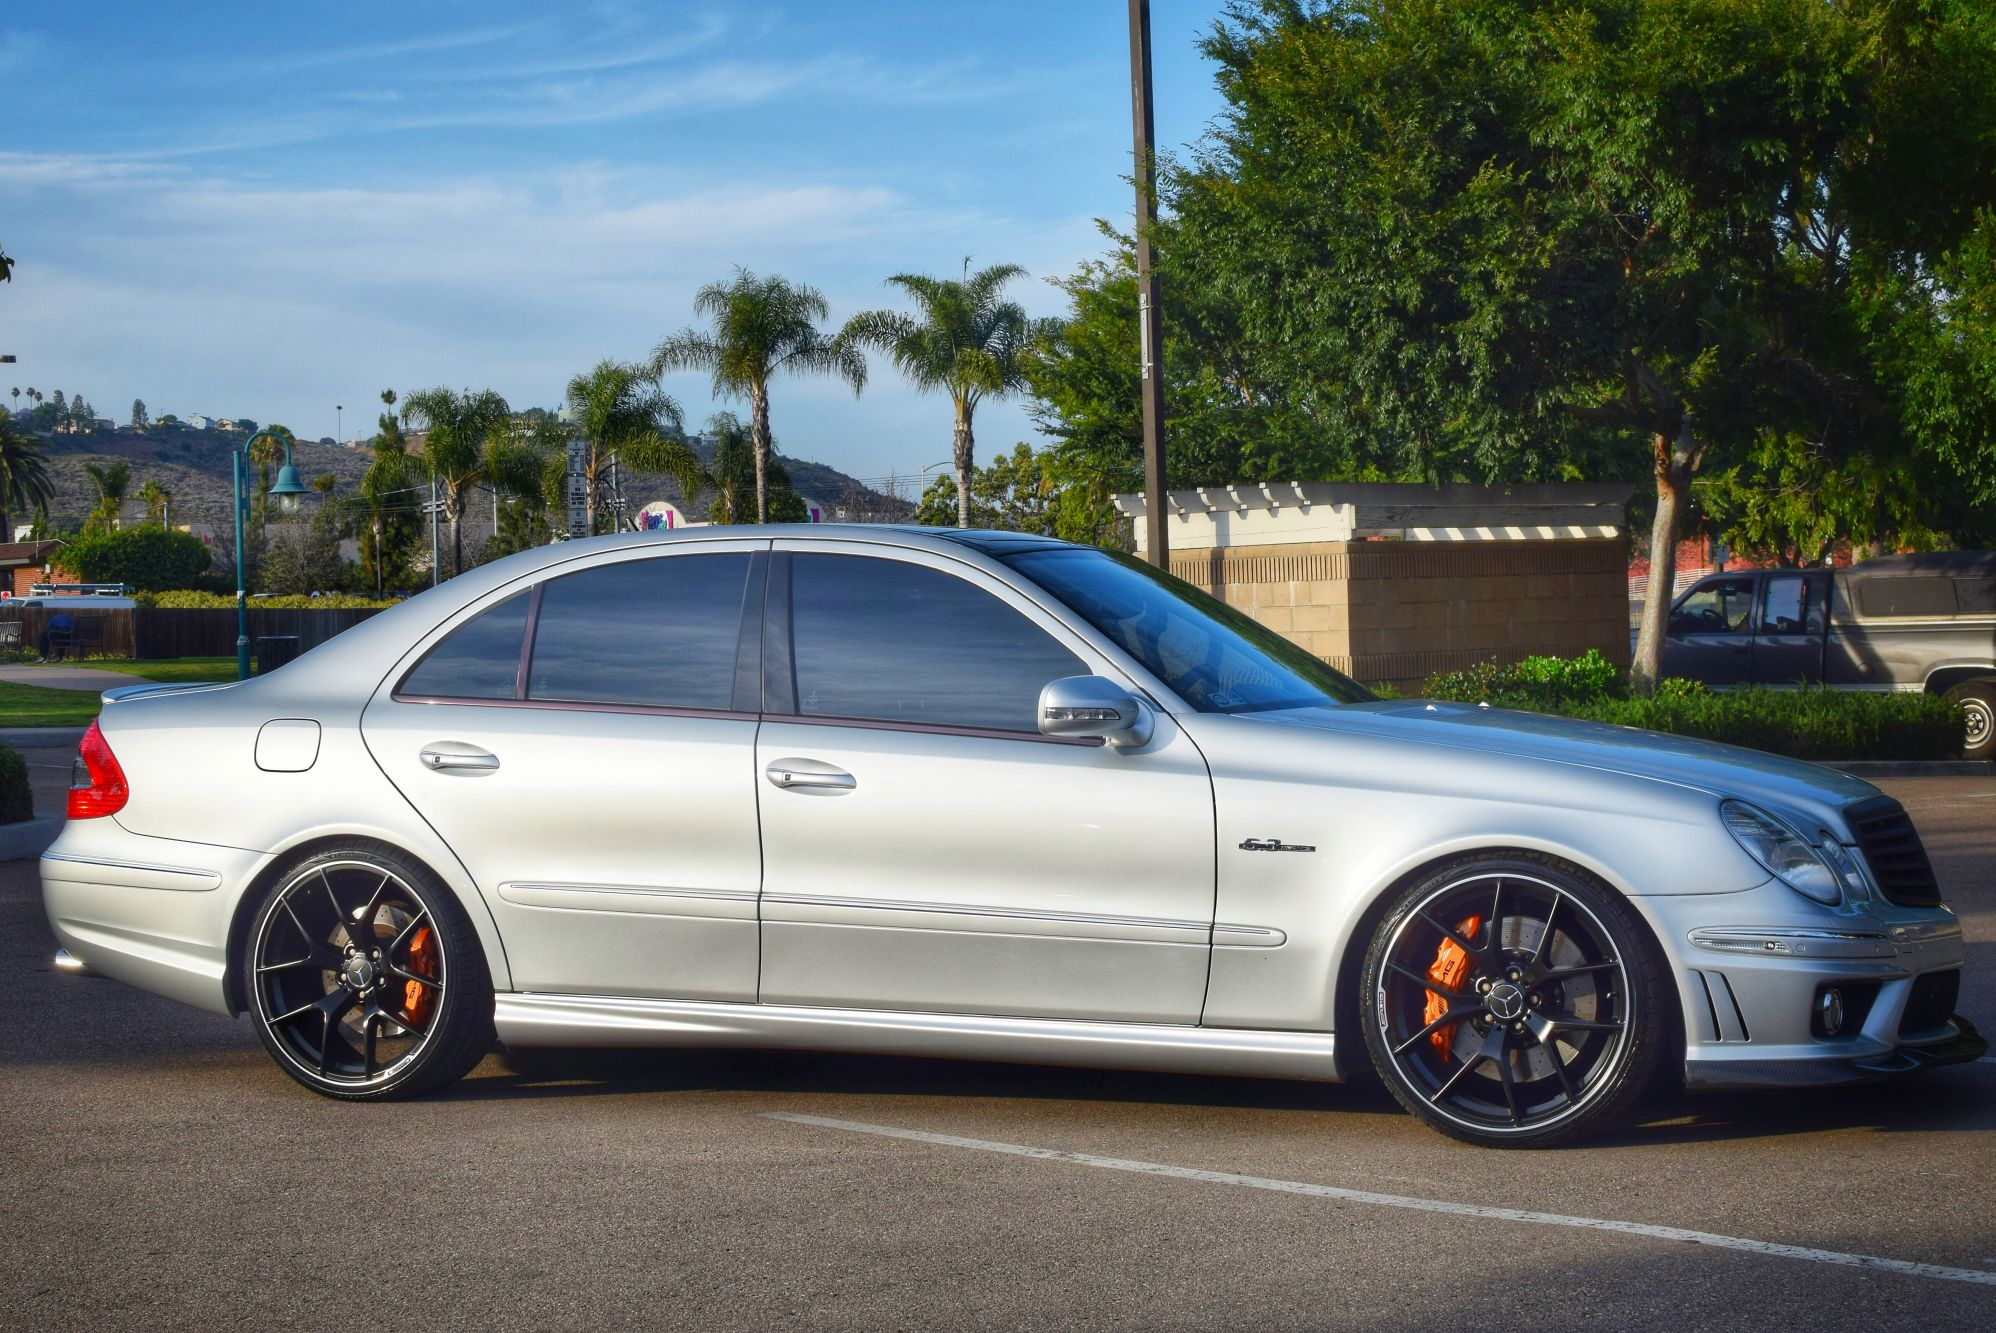 2007 mercedes benz e63 amg up for grabs for Mercedes benz e63 amg for sale